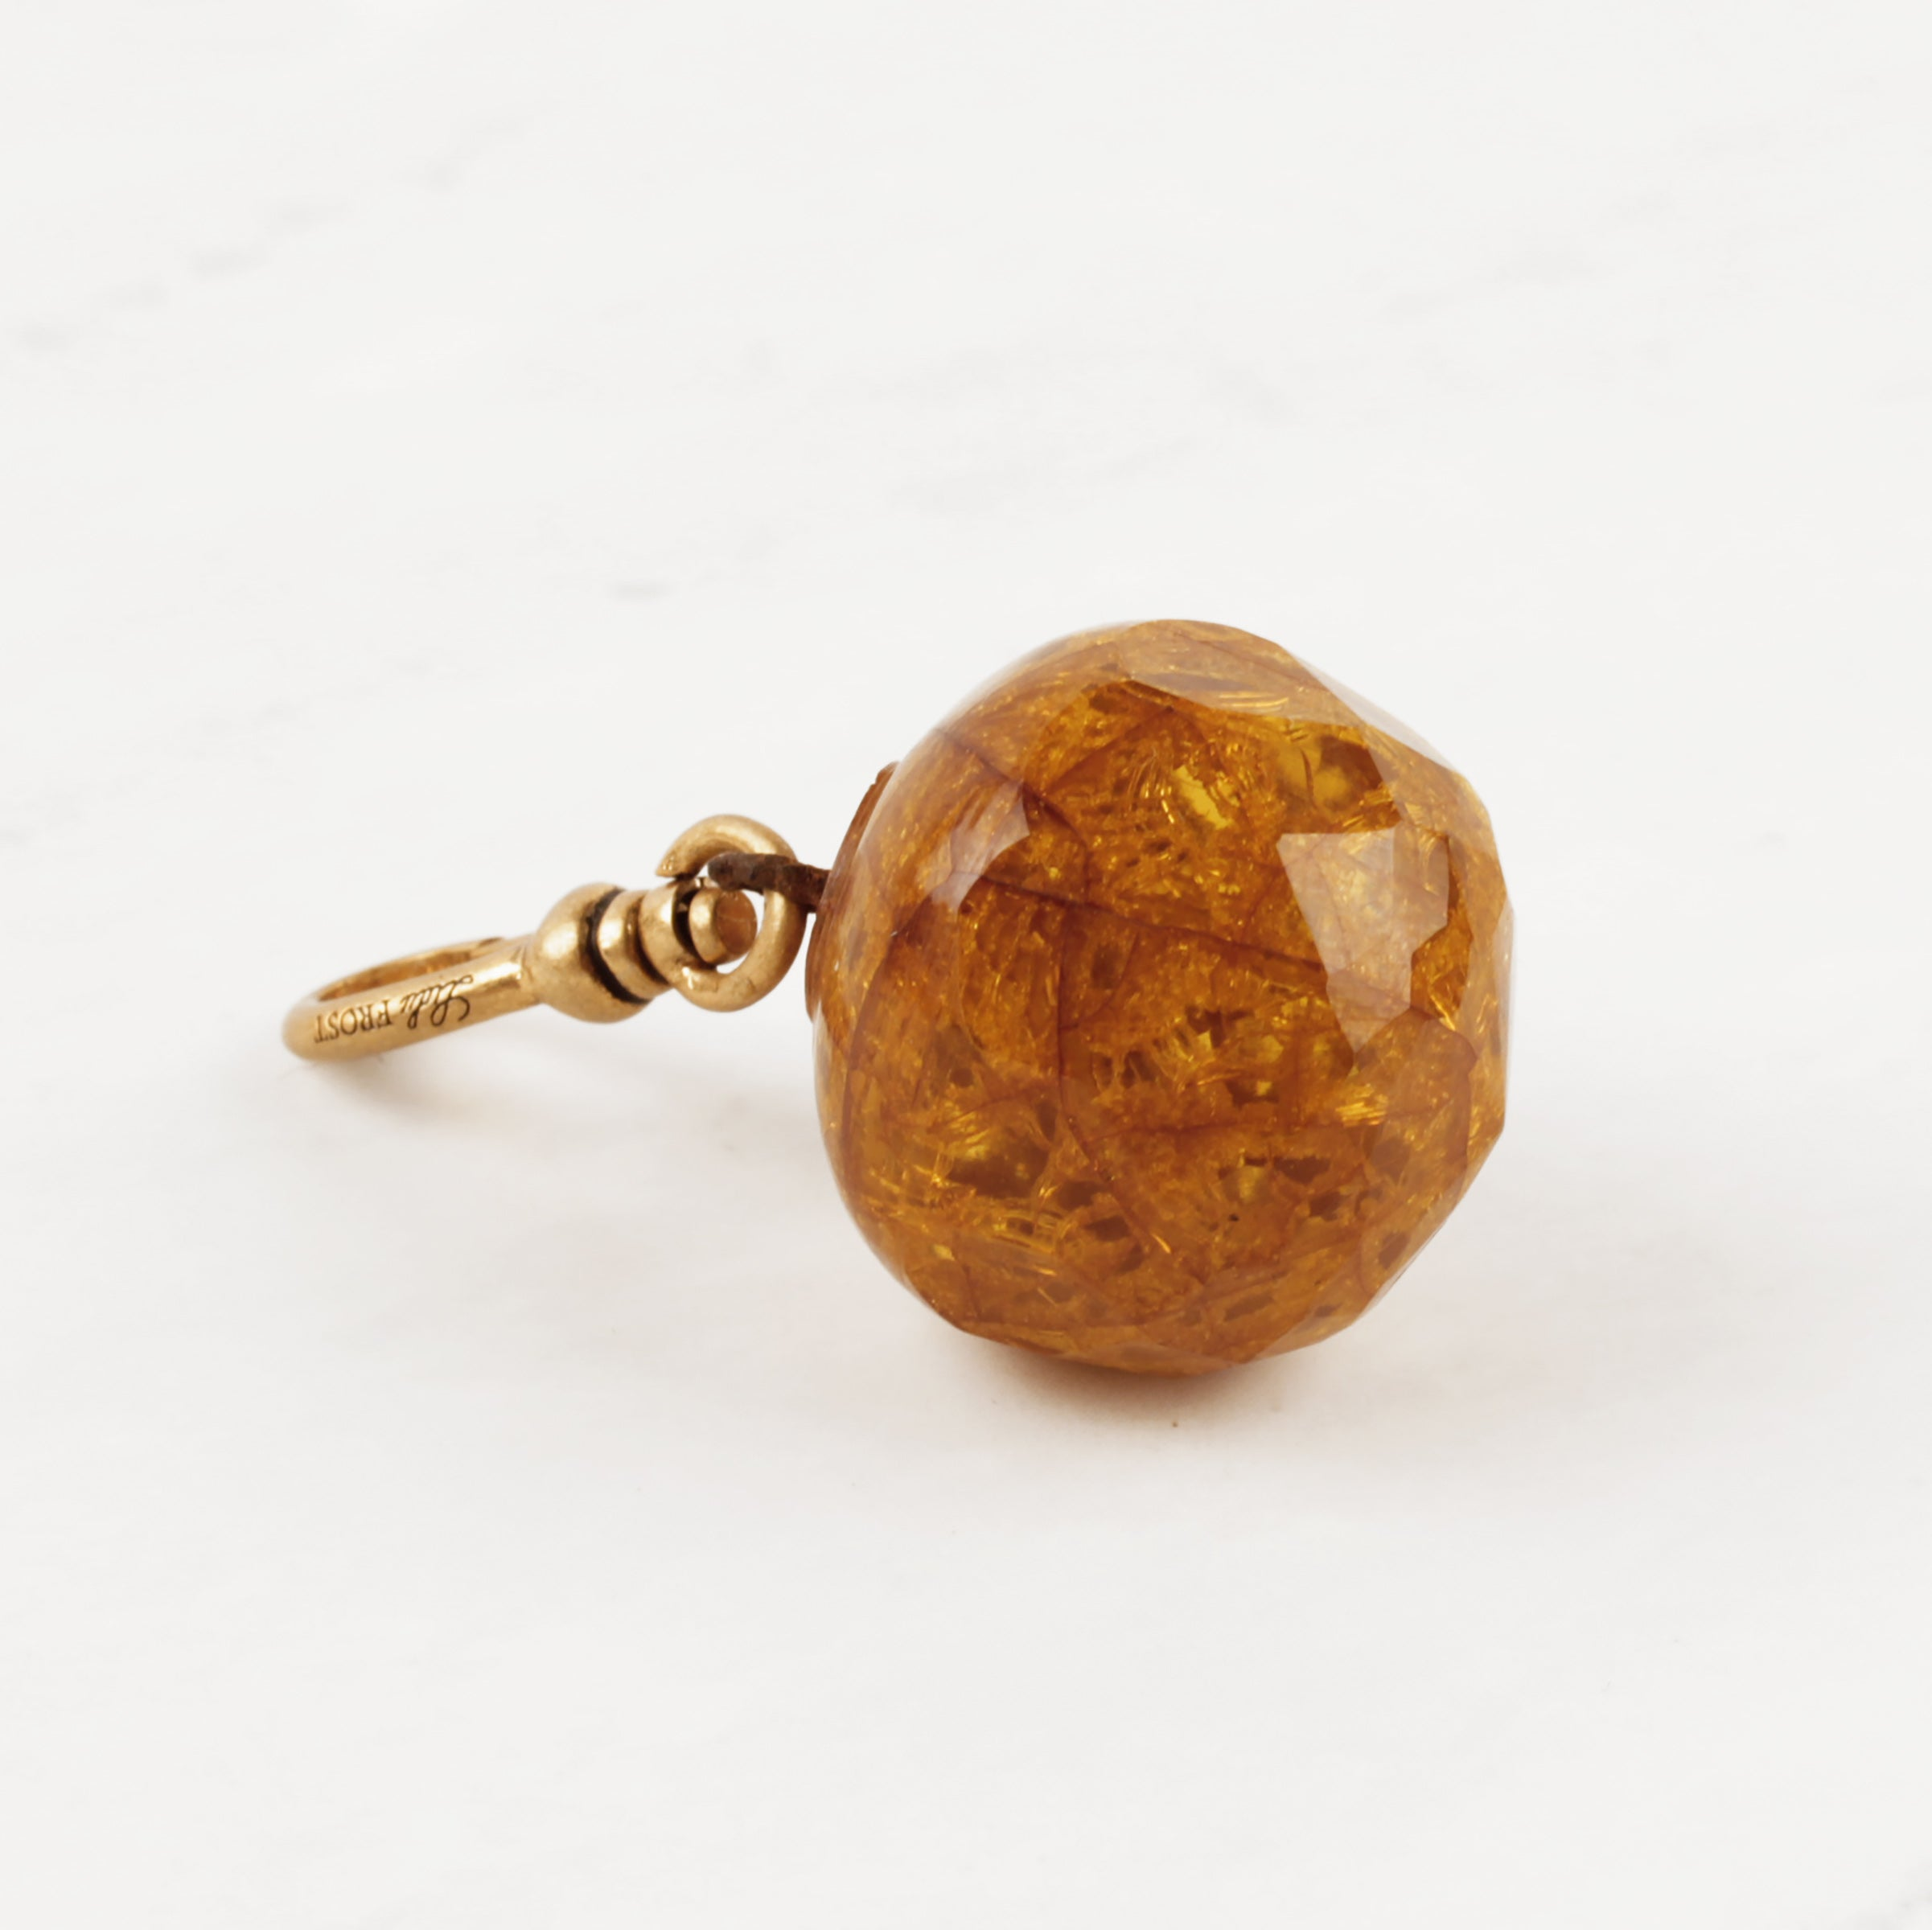 Vintage Crystallized Honey Bauble Charm